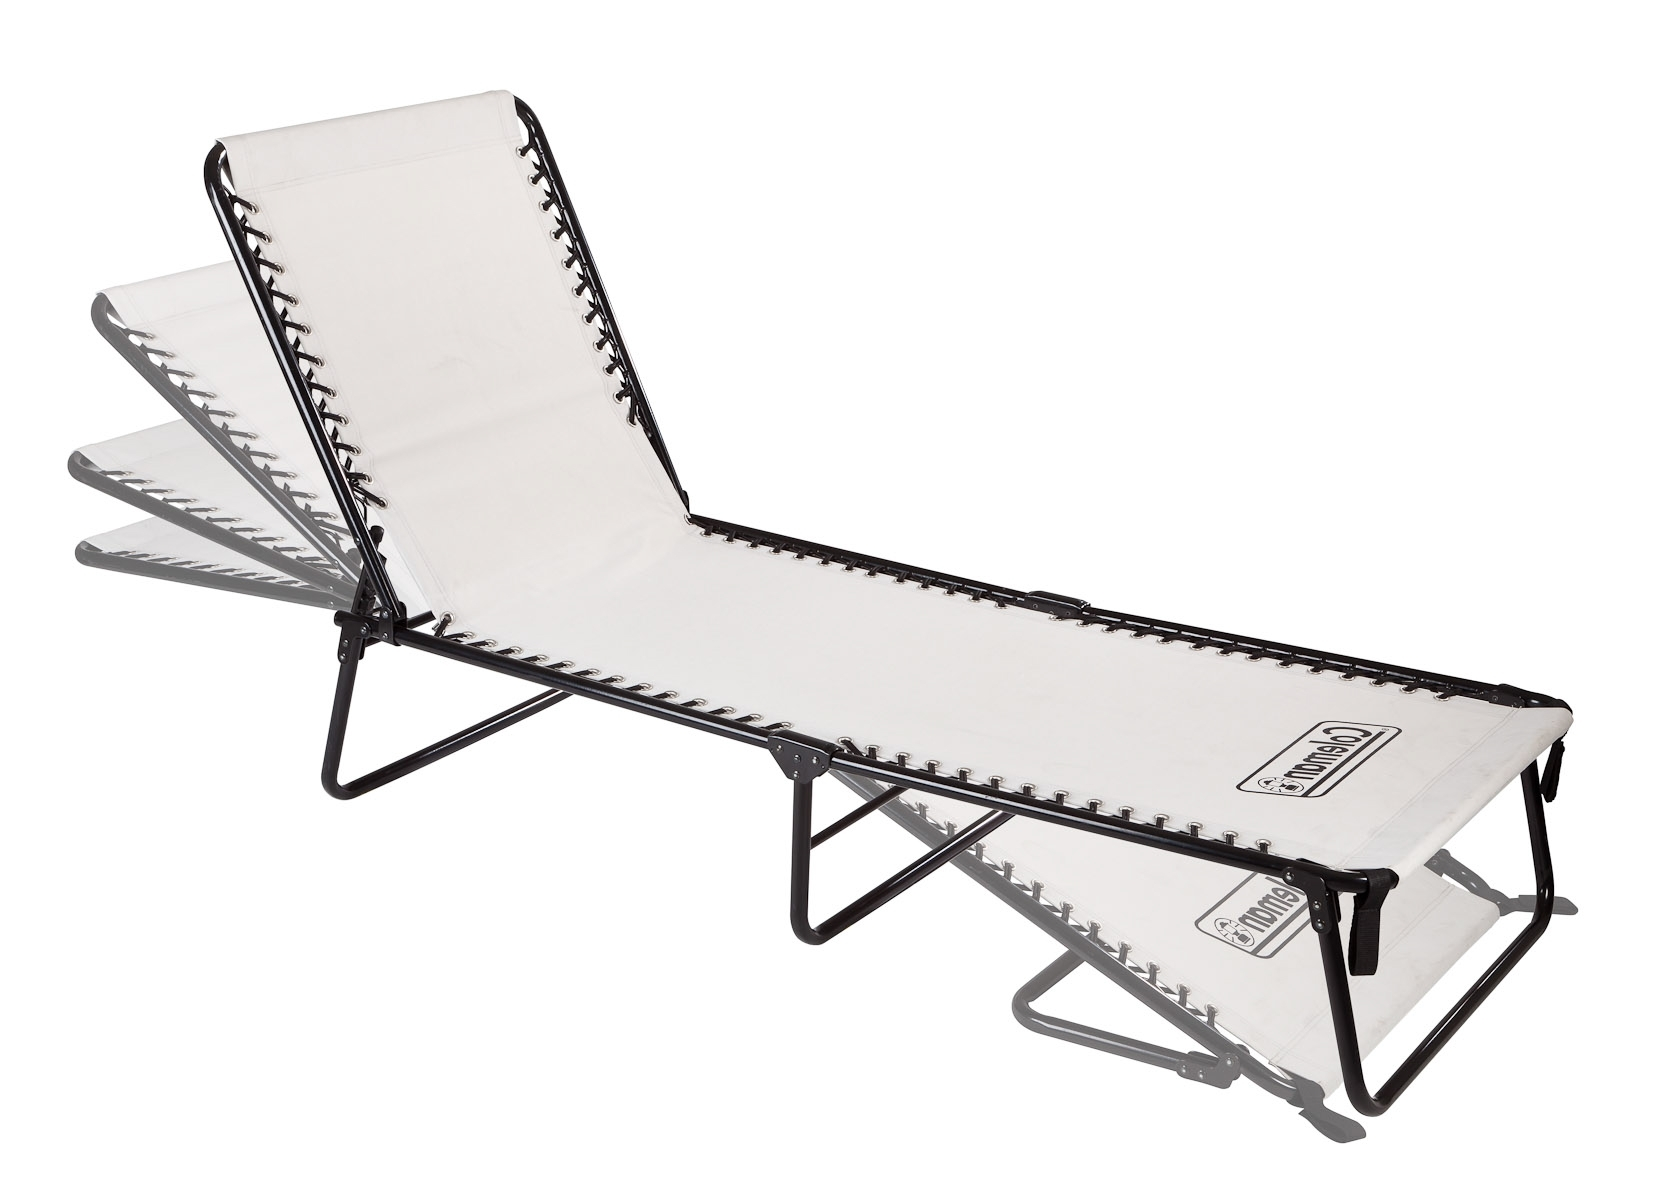 Folding Chaise Lounge Chairs For Outdoor With Regard To Most Up To Date Folding Chaise Lounge Chairs Outdoor Wood Patio With Design  (View 6 of 15)